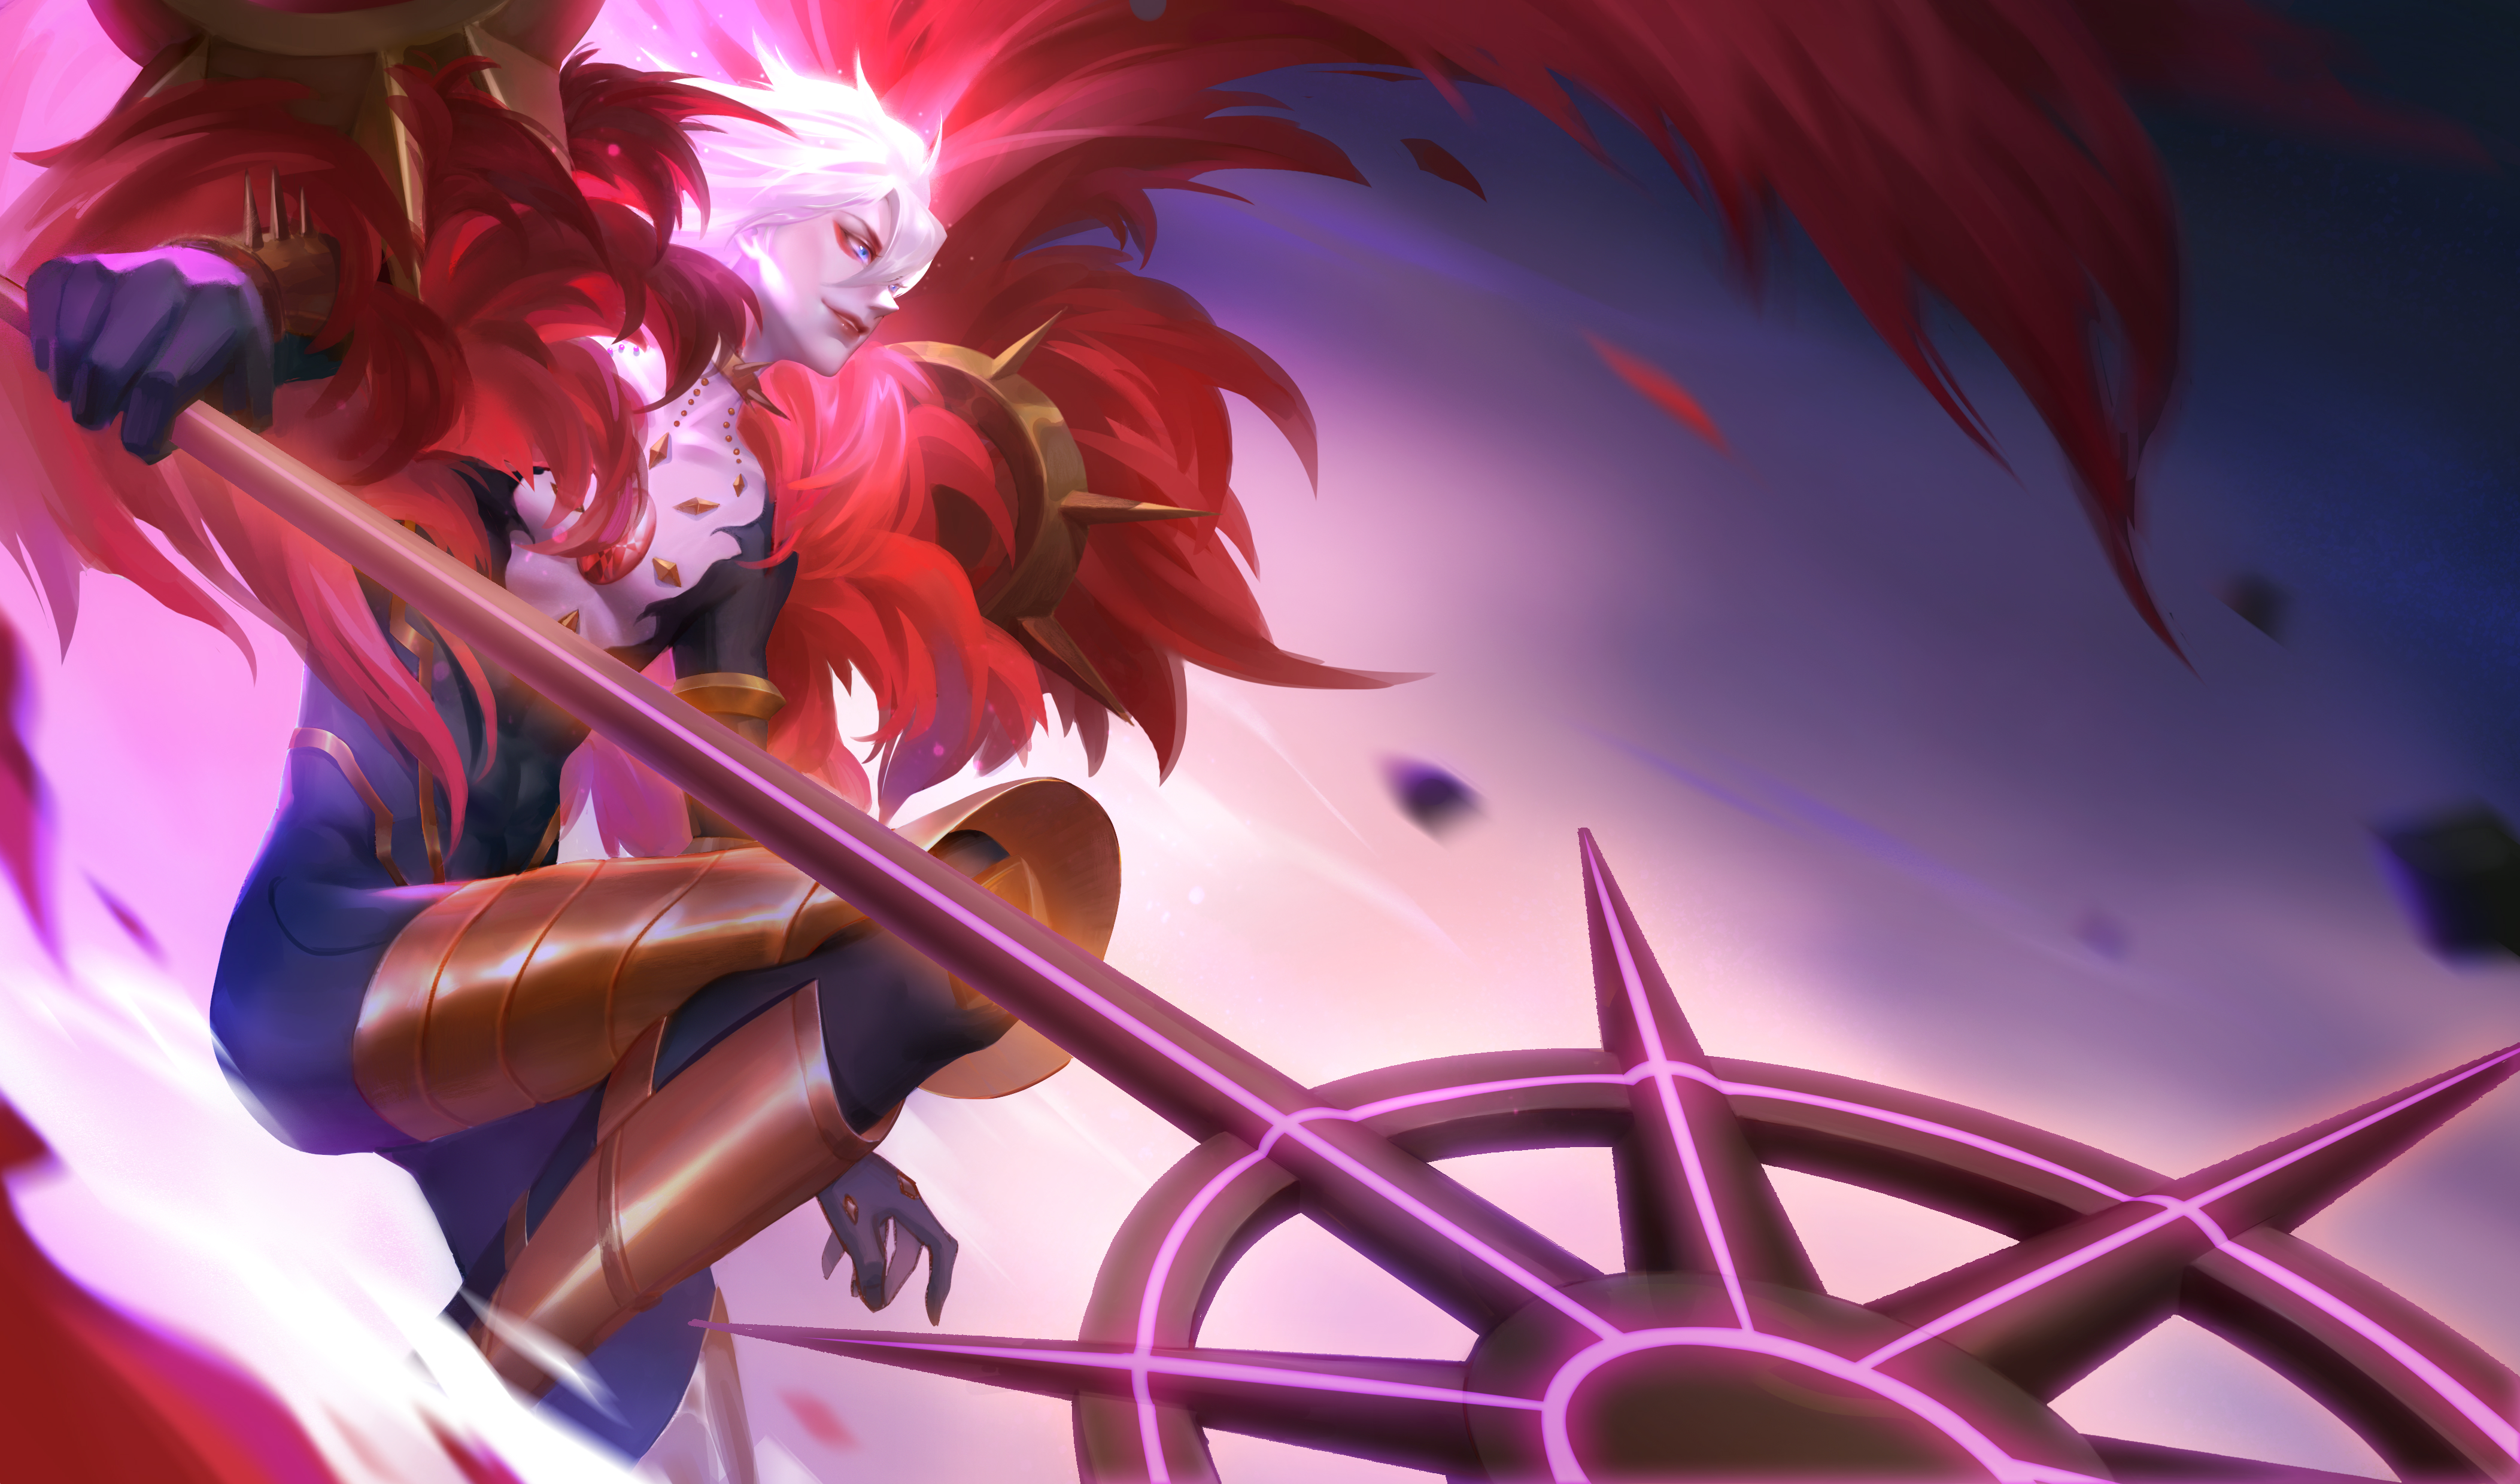 Lancer Of Red Fate Apocrypha Hd Anime 4k Wallpapers Images Backgrounds Photos And Pictures